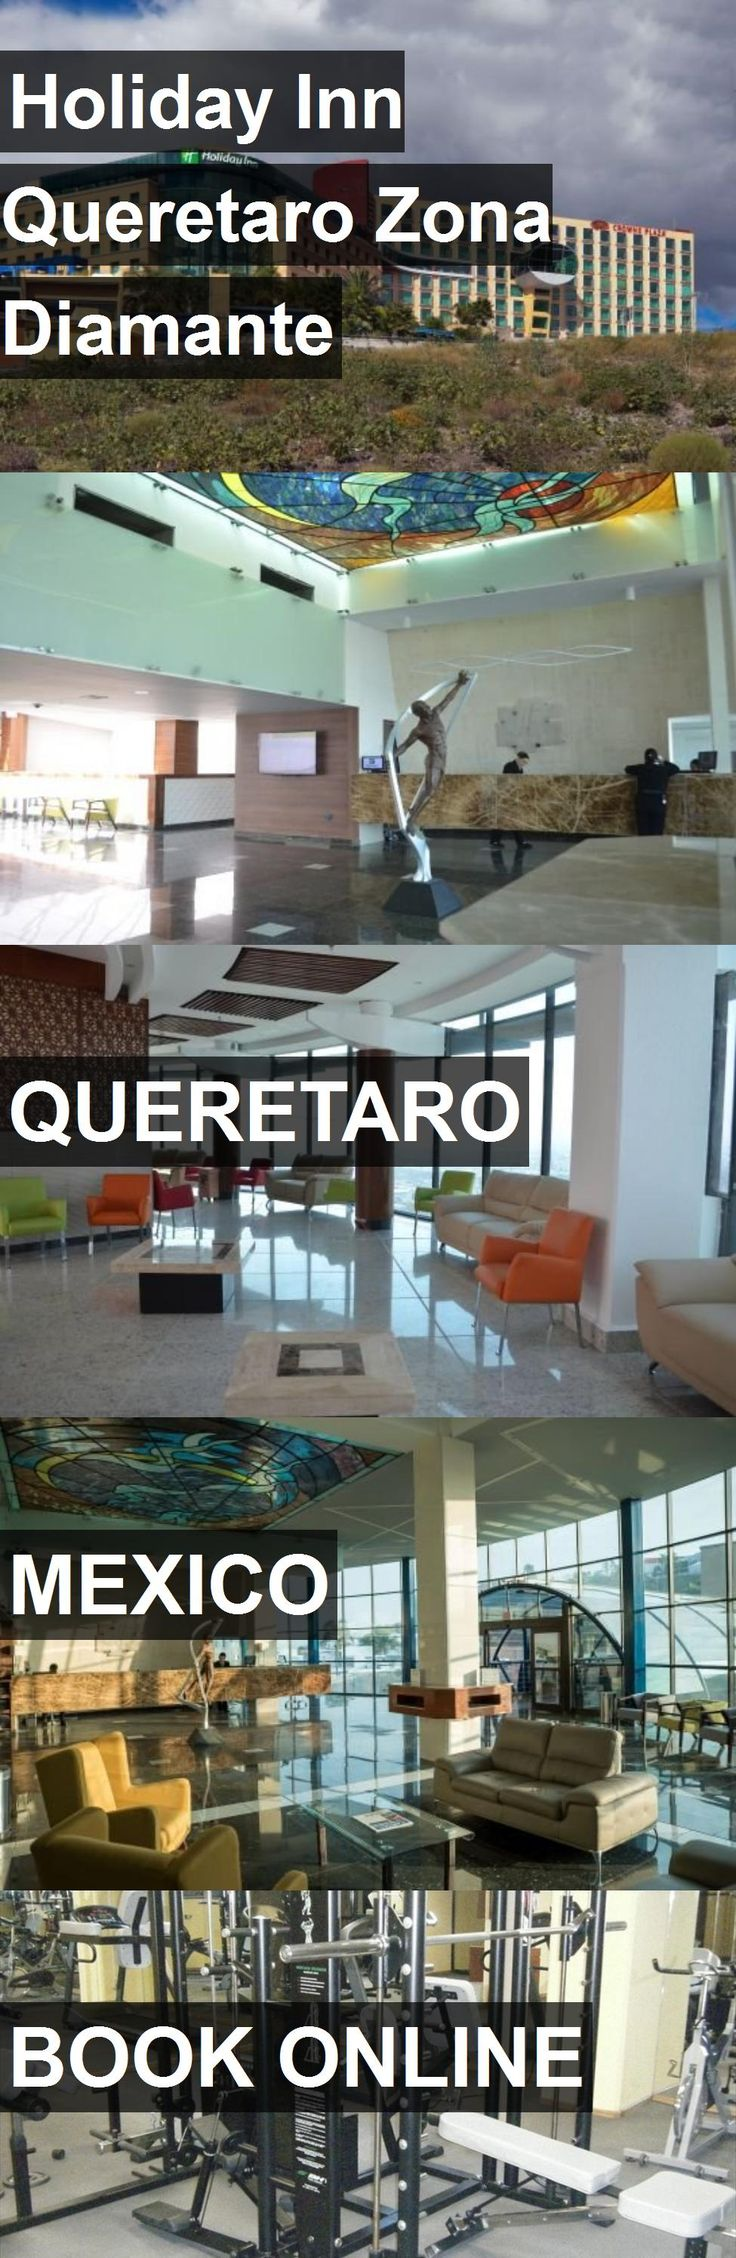 Hotel Holiday Inn Queretaro Zona Diamante in Queretaro, Mexico. For more information, photos, reviews and best prices please follow the link. #Mexico #Queretaro #HolidayInnQueretaroZonaDiamante #hotel #travel #vacation